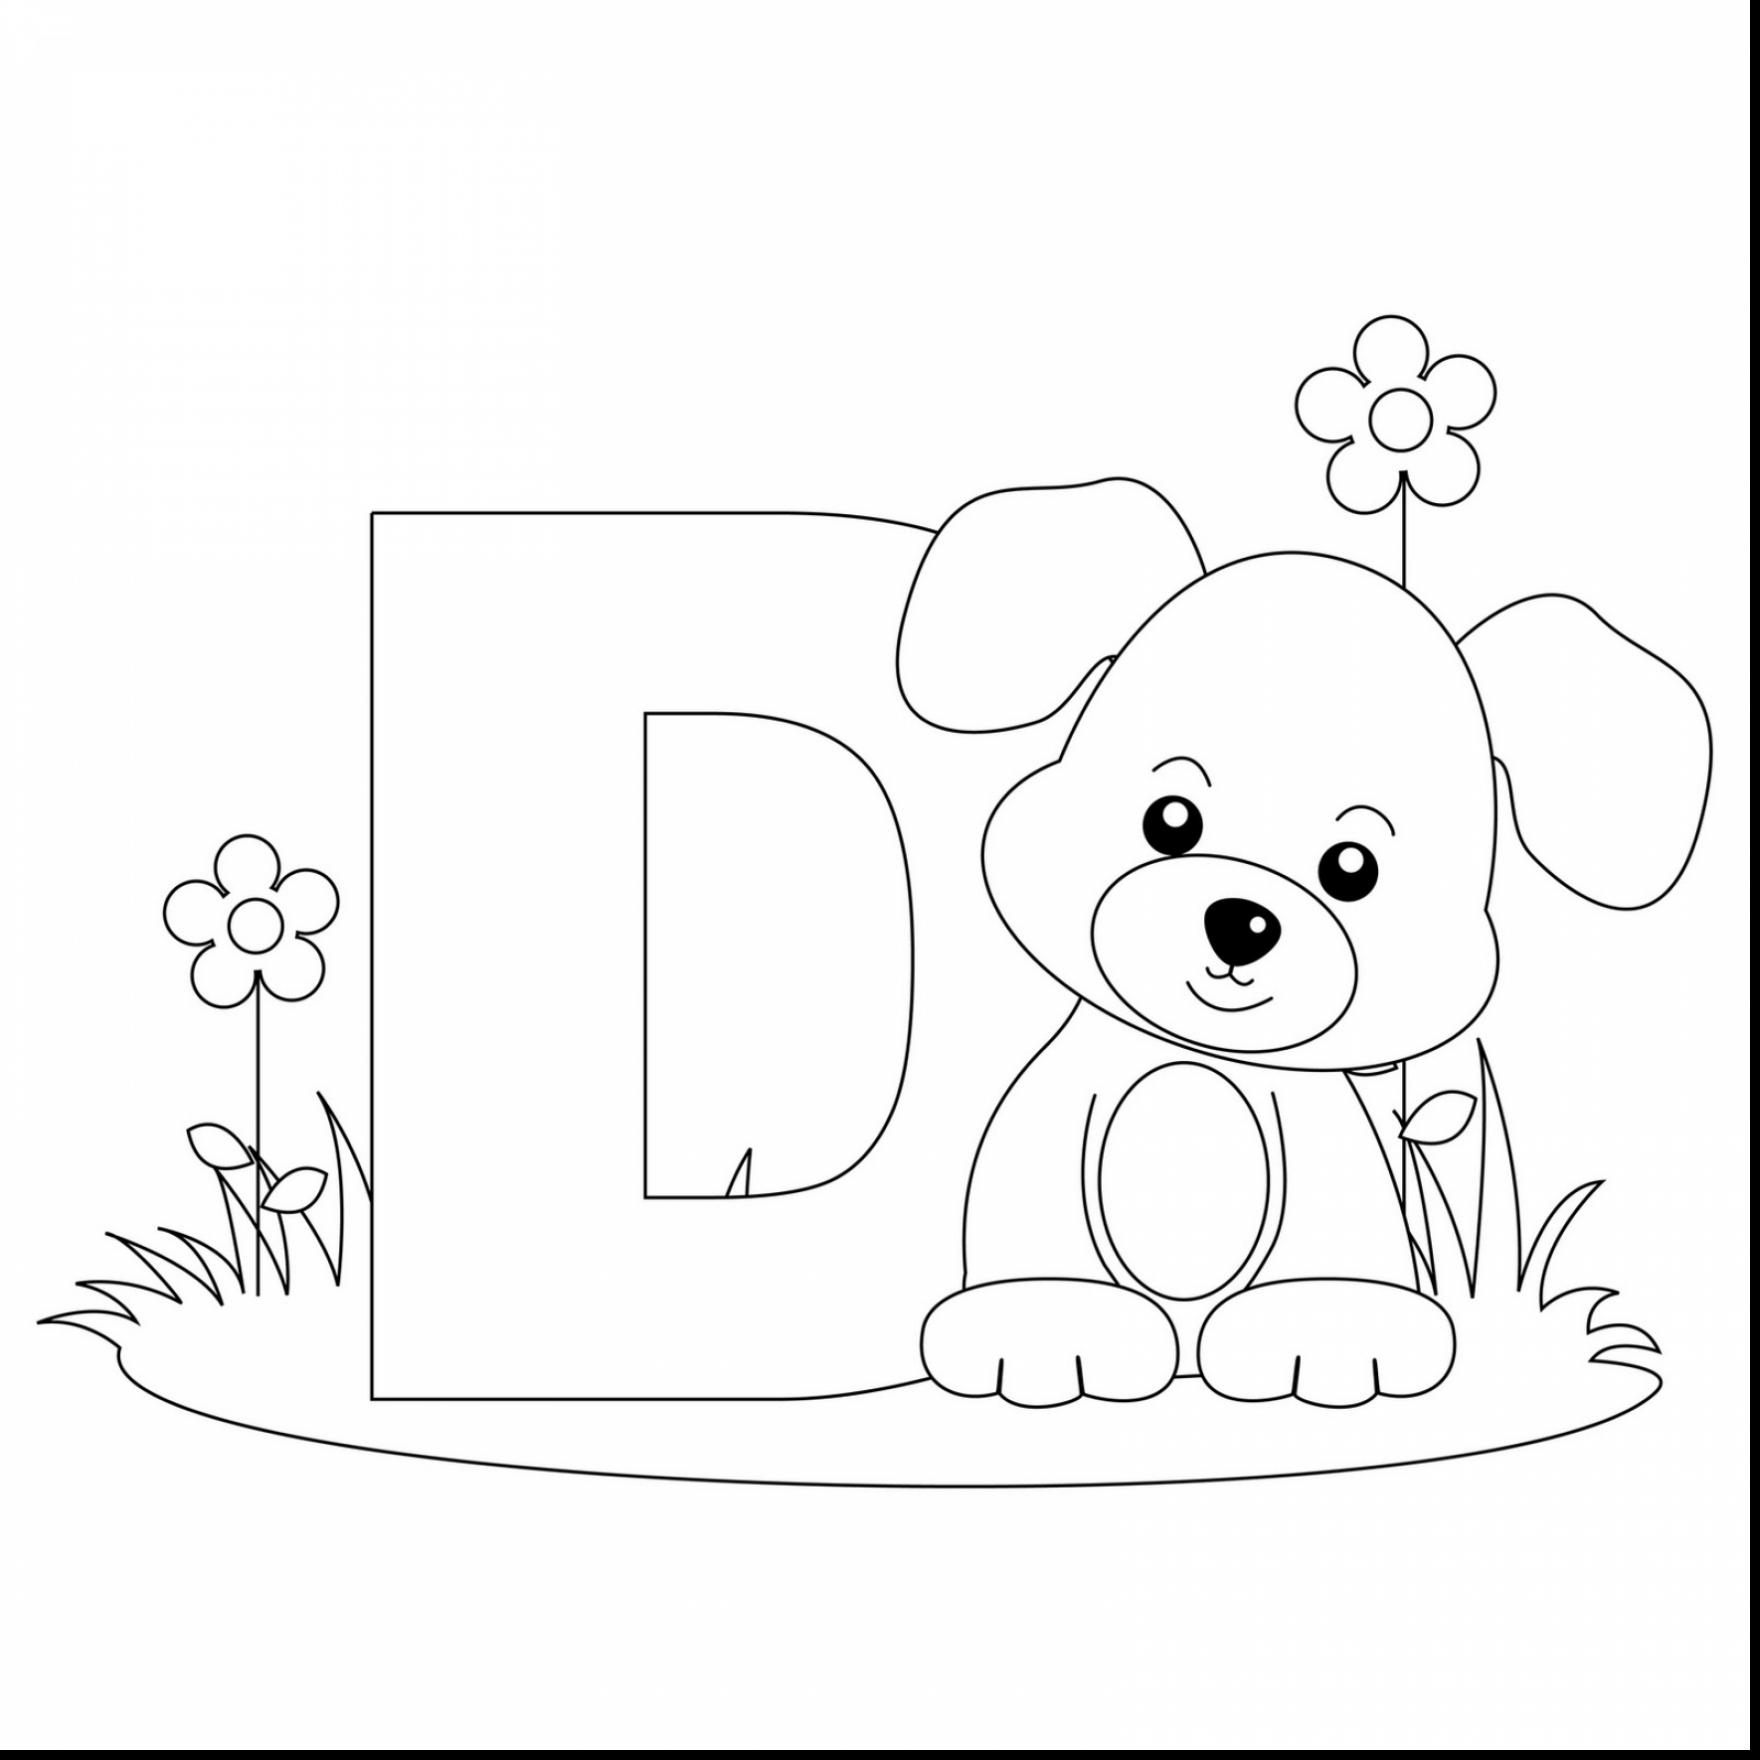 Letter D Coloring Pages Preschool At Getcolorings